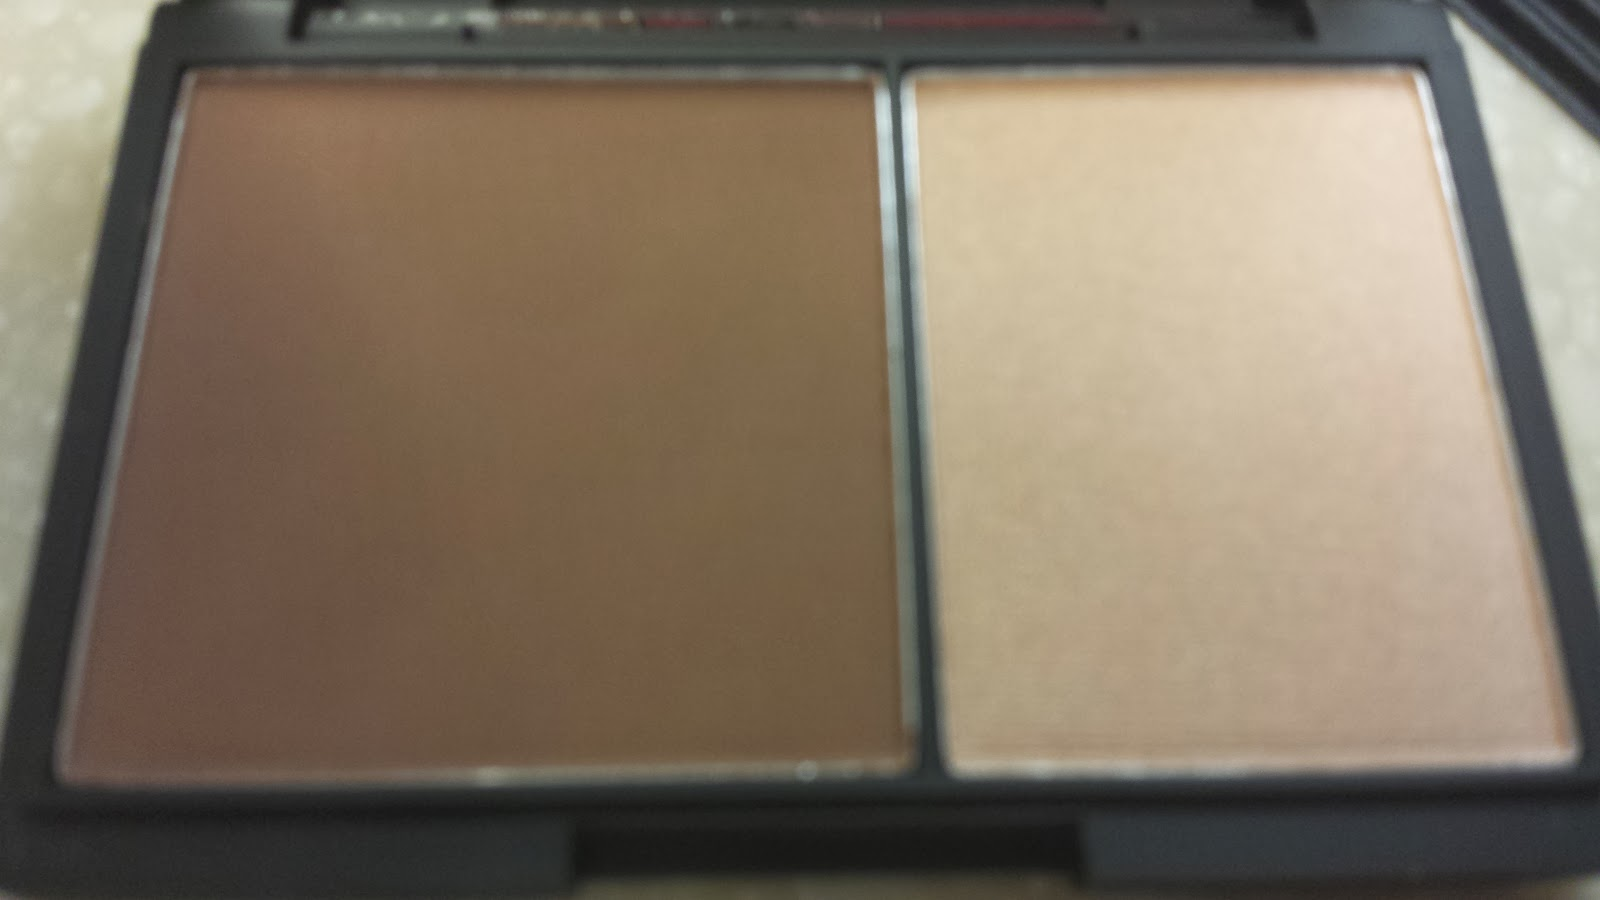 Sleek Makeup Face Contour (Medium)